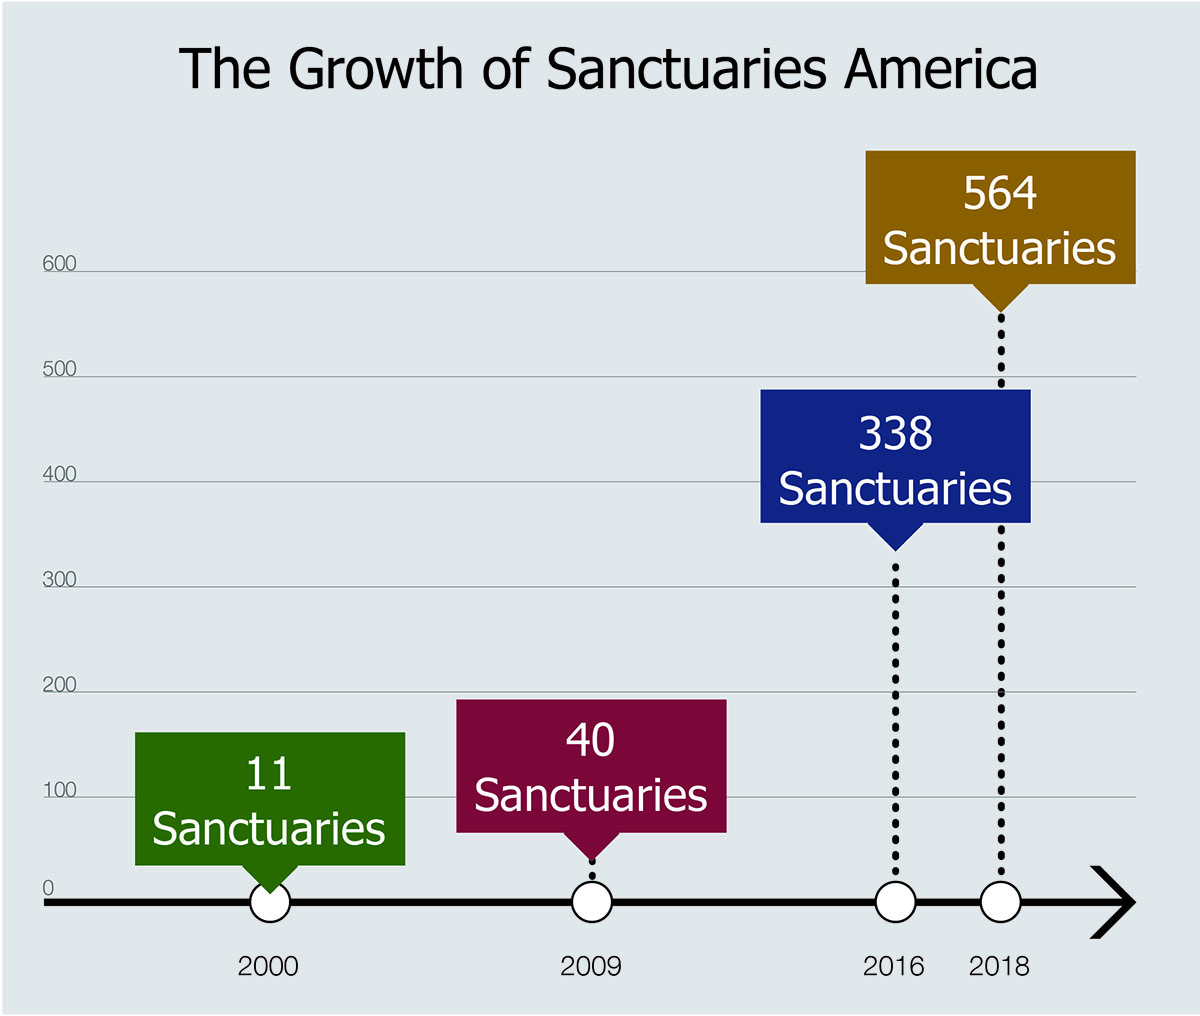 Growth of Sanctuaries in America Chart